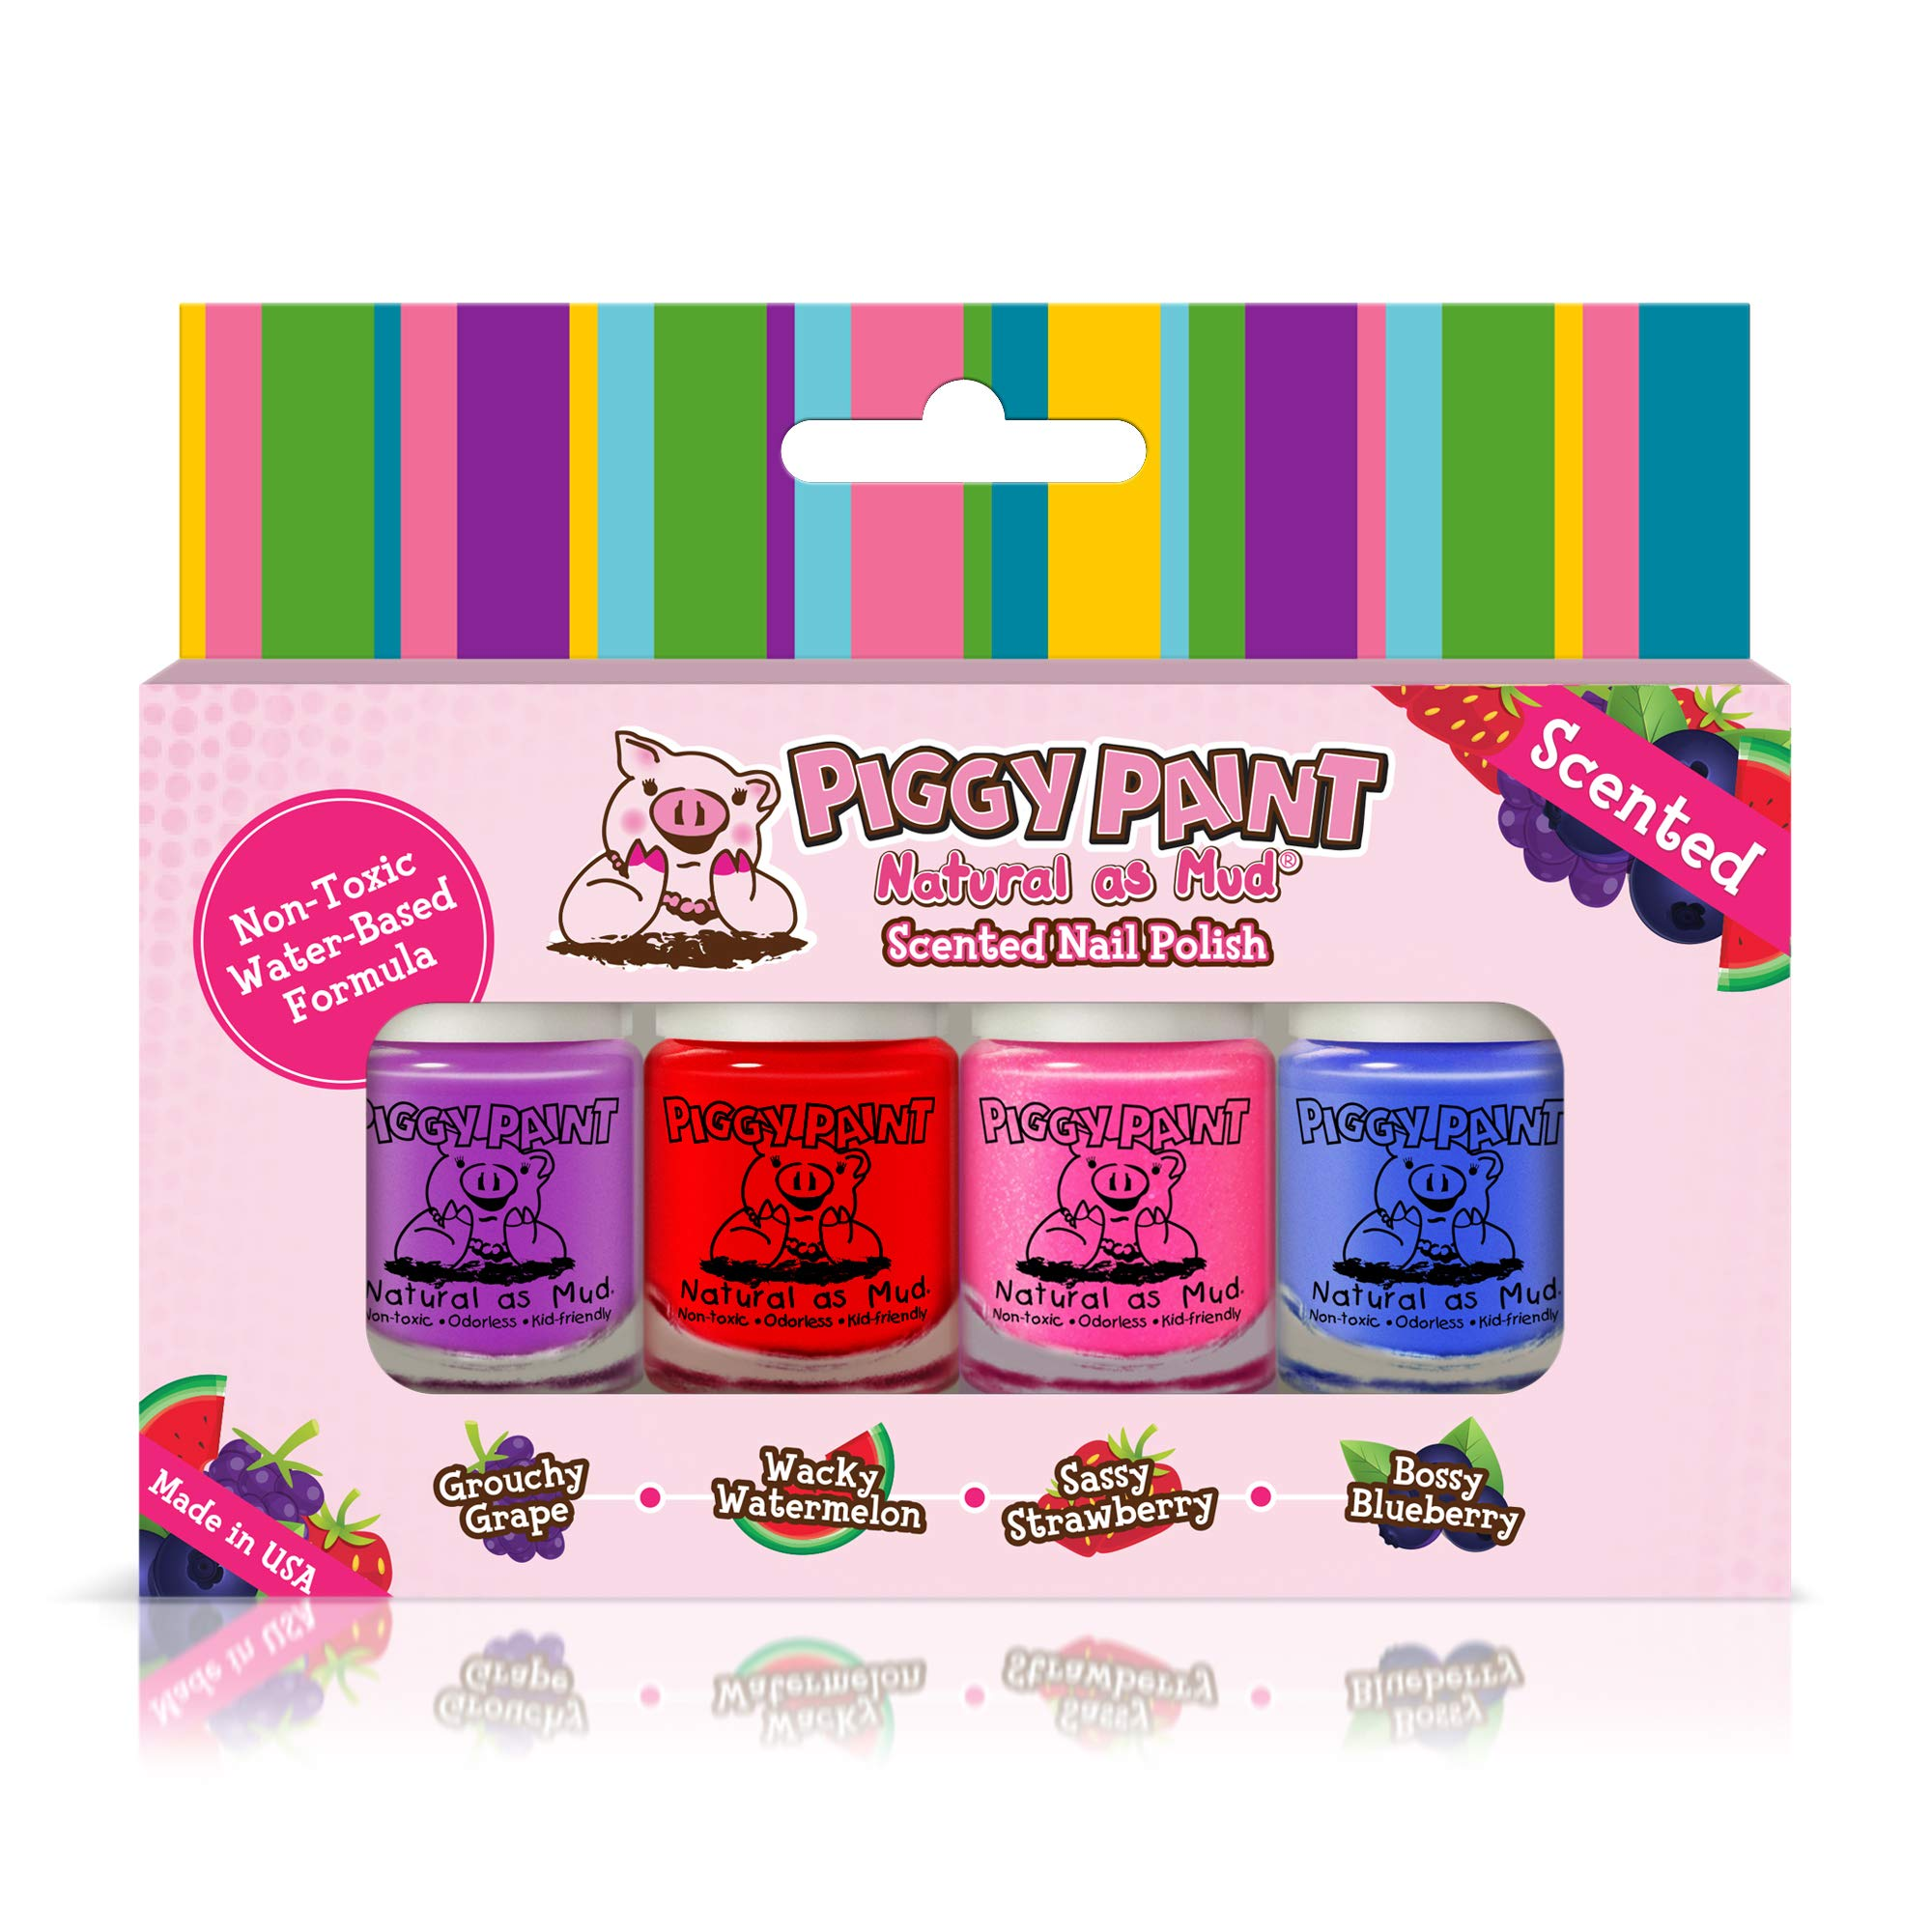 Piggy Paint - 100% Non-toxic Girls Nail Polish, Safe, Chemical Free, Low Odor for Kids - 4 Polish Gift Set (Scented) by Piggy Paint